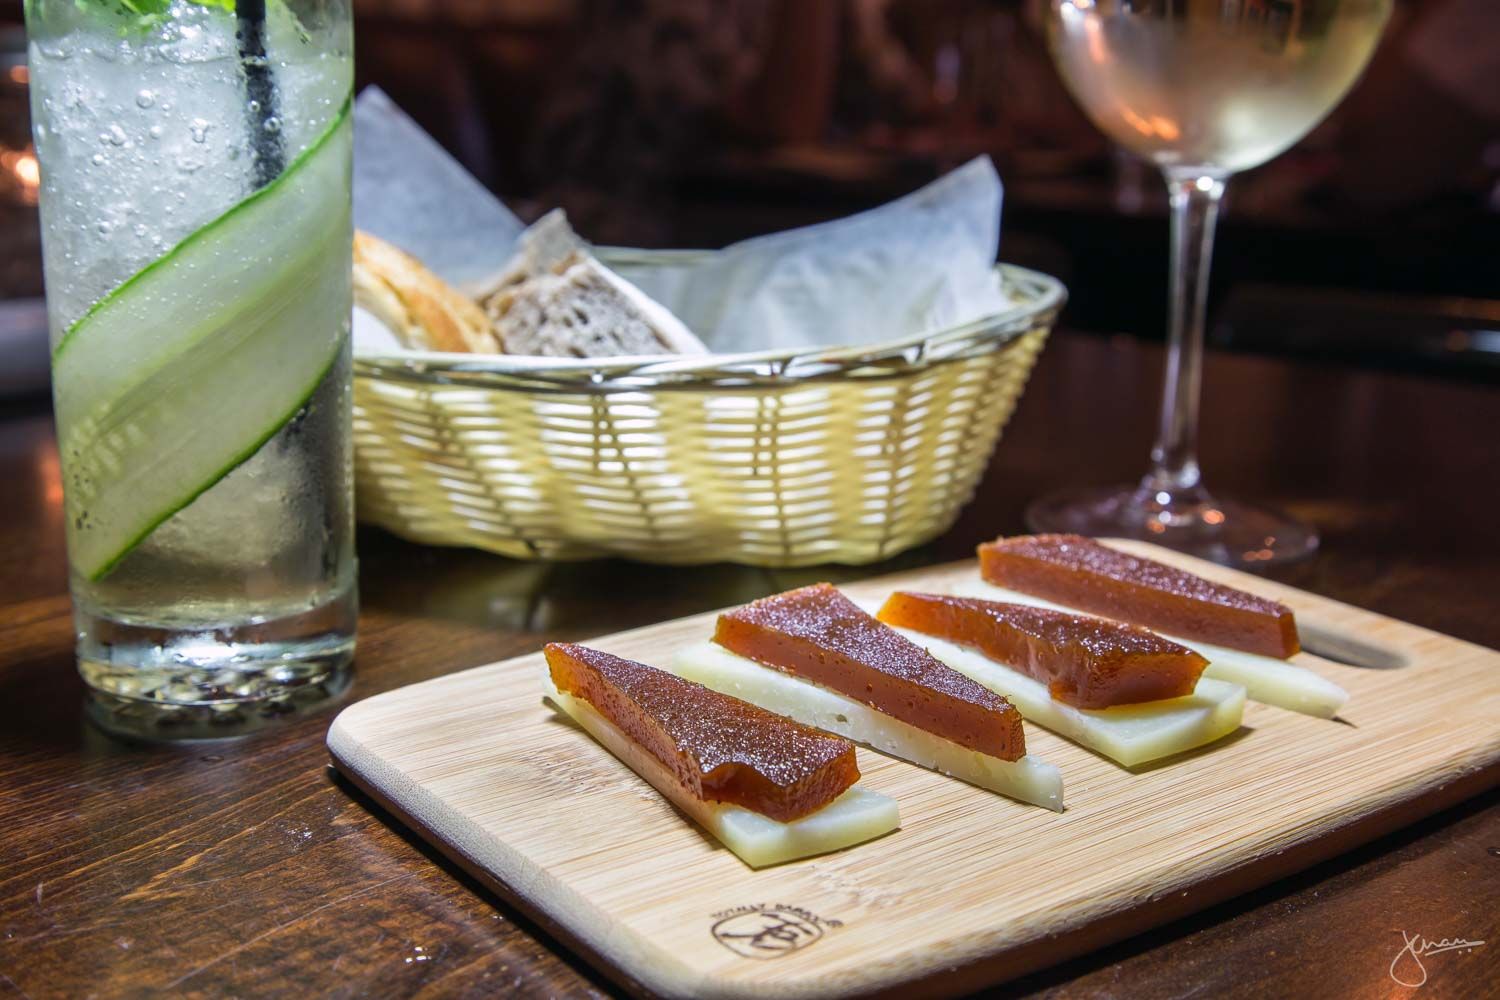 Membrillo Y Queso - Aged Manchego Cheese, and Quince Jelly